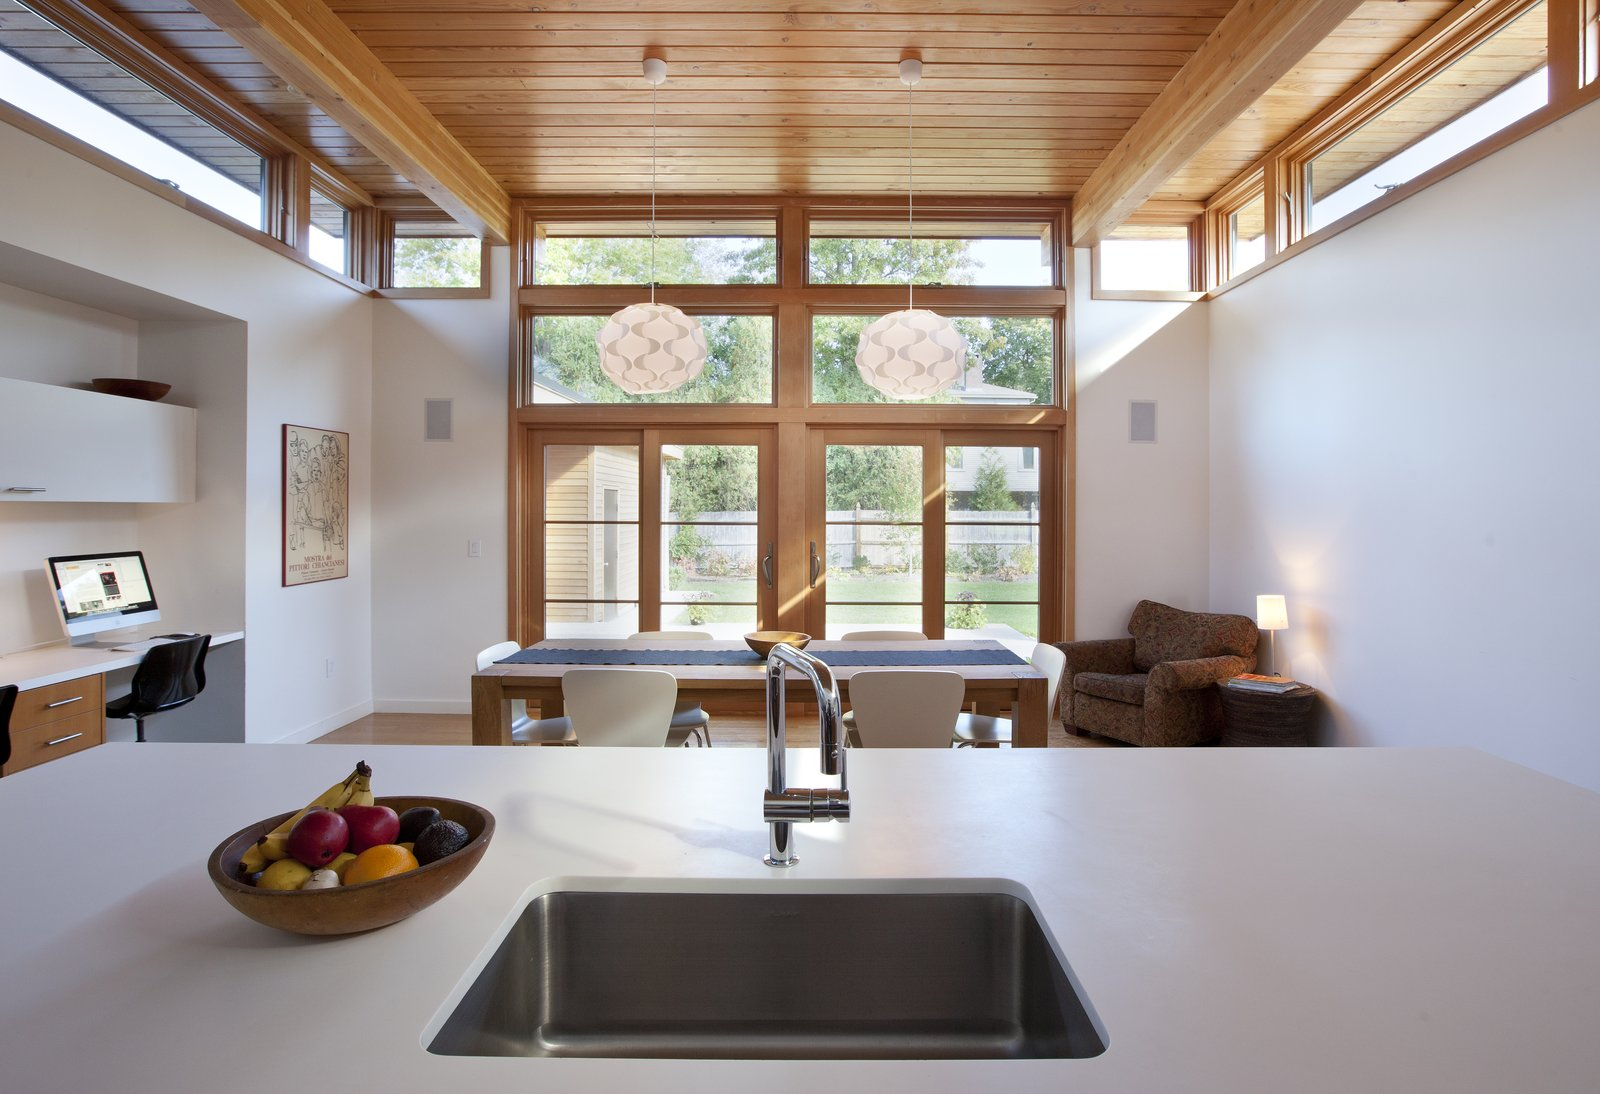 "The owners requested that the kitchen act as the center of the home so it was built at the rear of the property. ""It allowed us to pop off the roof and add clerestory windows to bring in an abundance of sunlight and fresh air,"" DiRocco said. The sink is by Blanco and the faucet is by Grohe. Tagged: Kitchen and Undermount Sink.  Shining Examples of Clerestory Windows by Luke Hopping from A Midcentury Modern Renovation Opens Interiors and Admits More Sunlight"